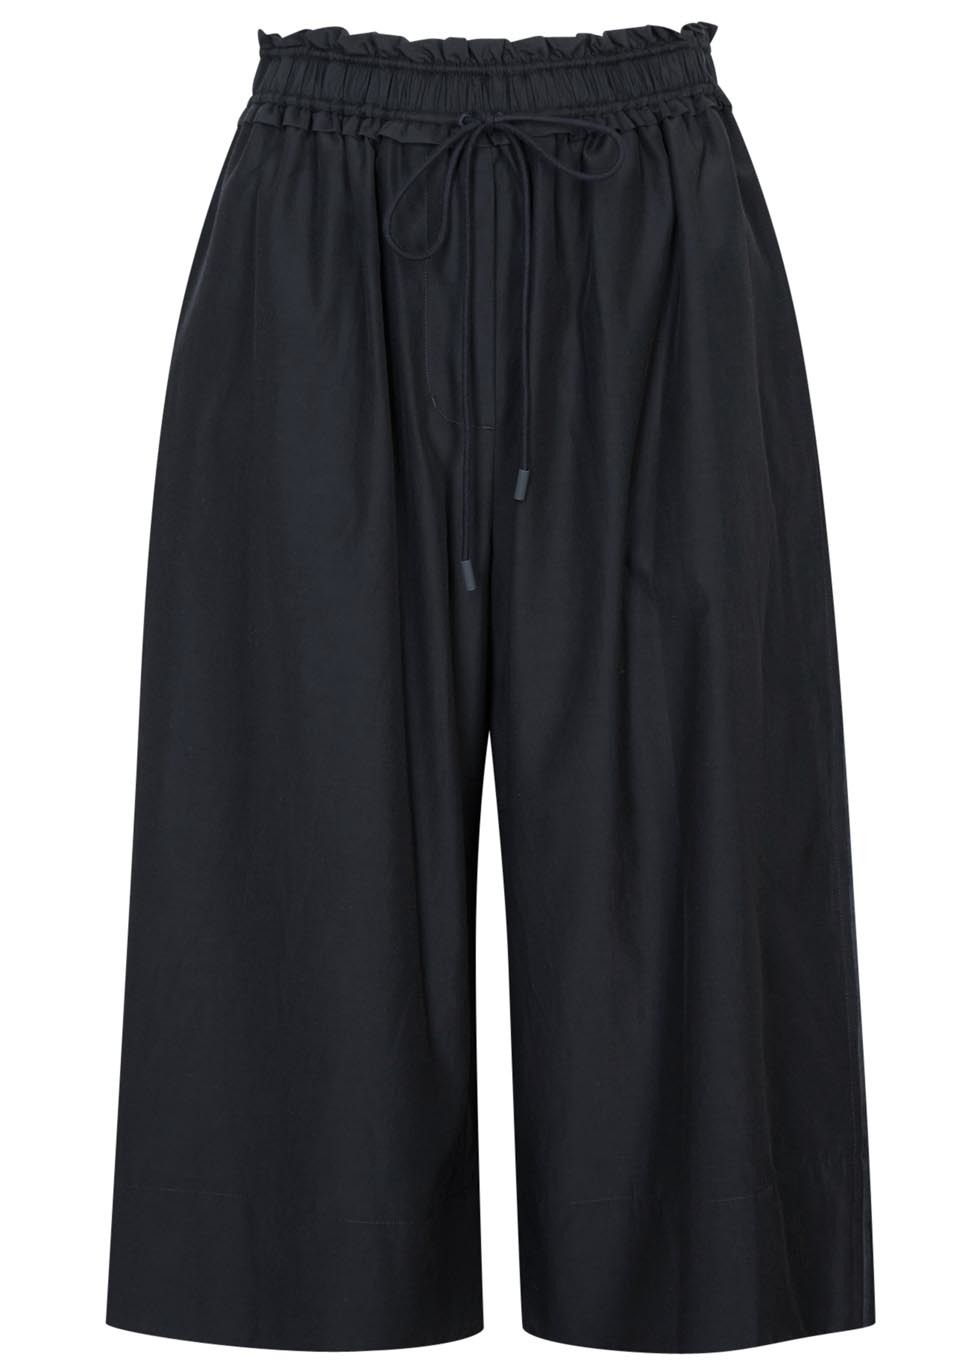 Navy Silk Blend Culottes - pattern: plain; waist: high rise; pocket detail: pockets at the sides; waist detail: belted waist/tie at waist/drawstring; predominant colour: navy; occasions: casual, creative work; fibres: silk - mix; texture group: silky - light; pattern type: fabric; season: s/s 2016; wardrobe: basic; style: culotte; length: below the knee; fit: baggy